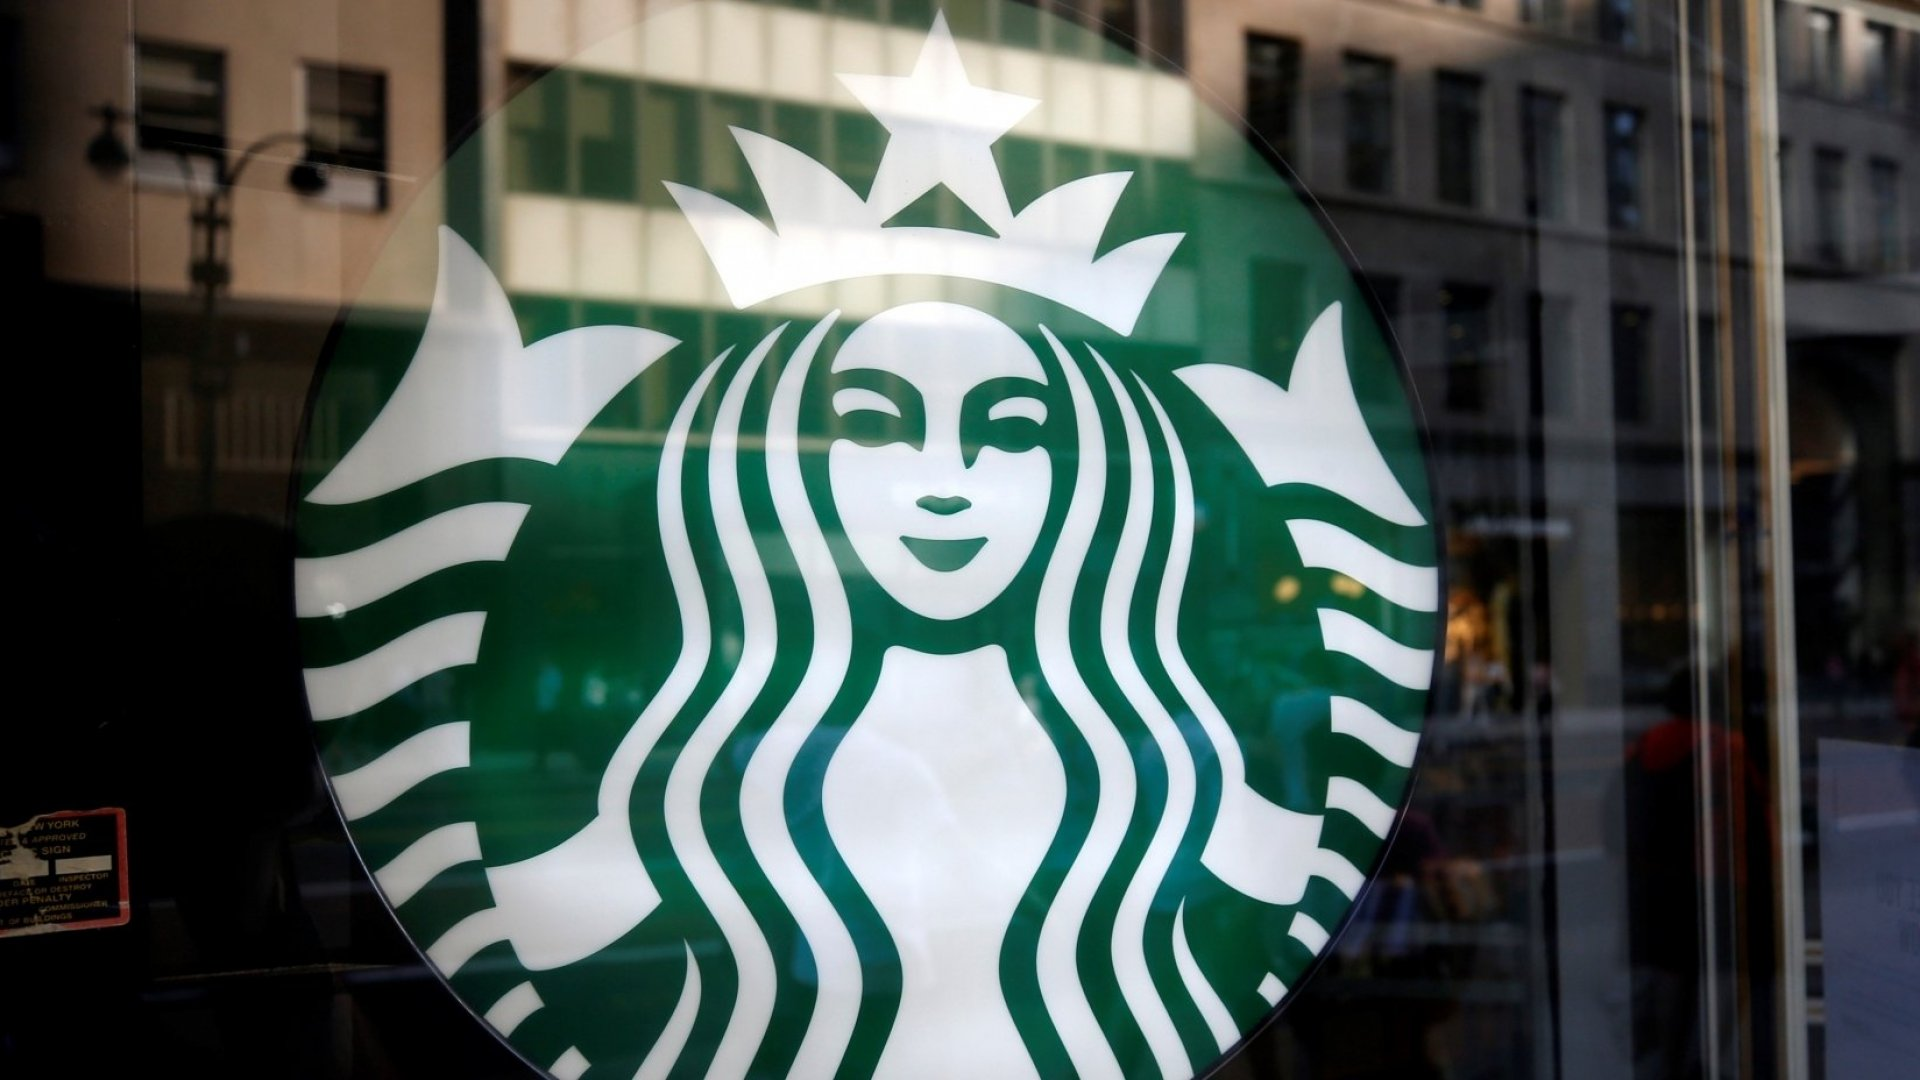 What to Expect When Starbucks Opens Its Doors After Diversity Training